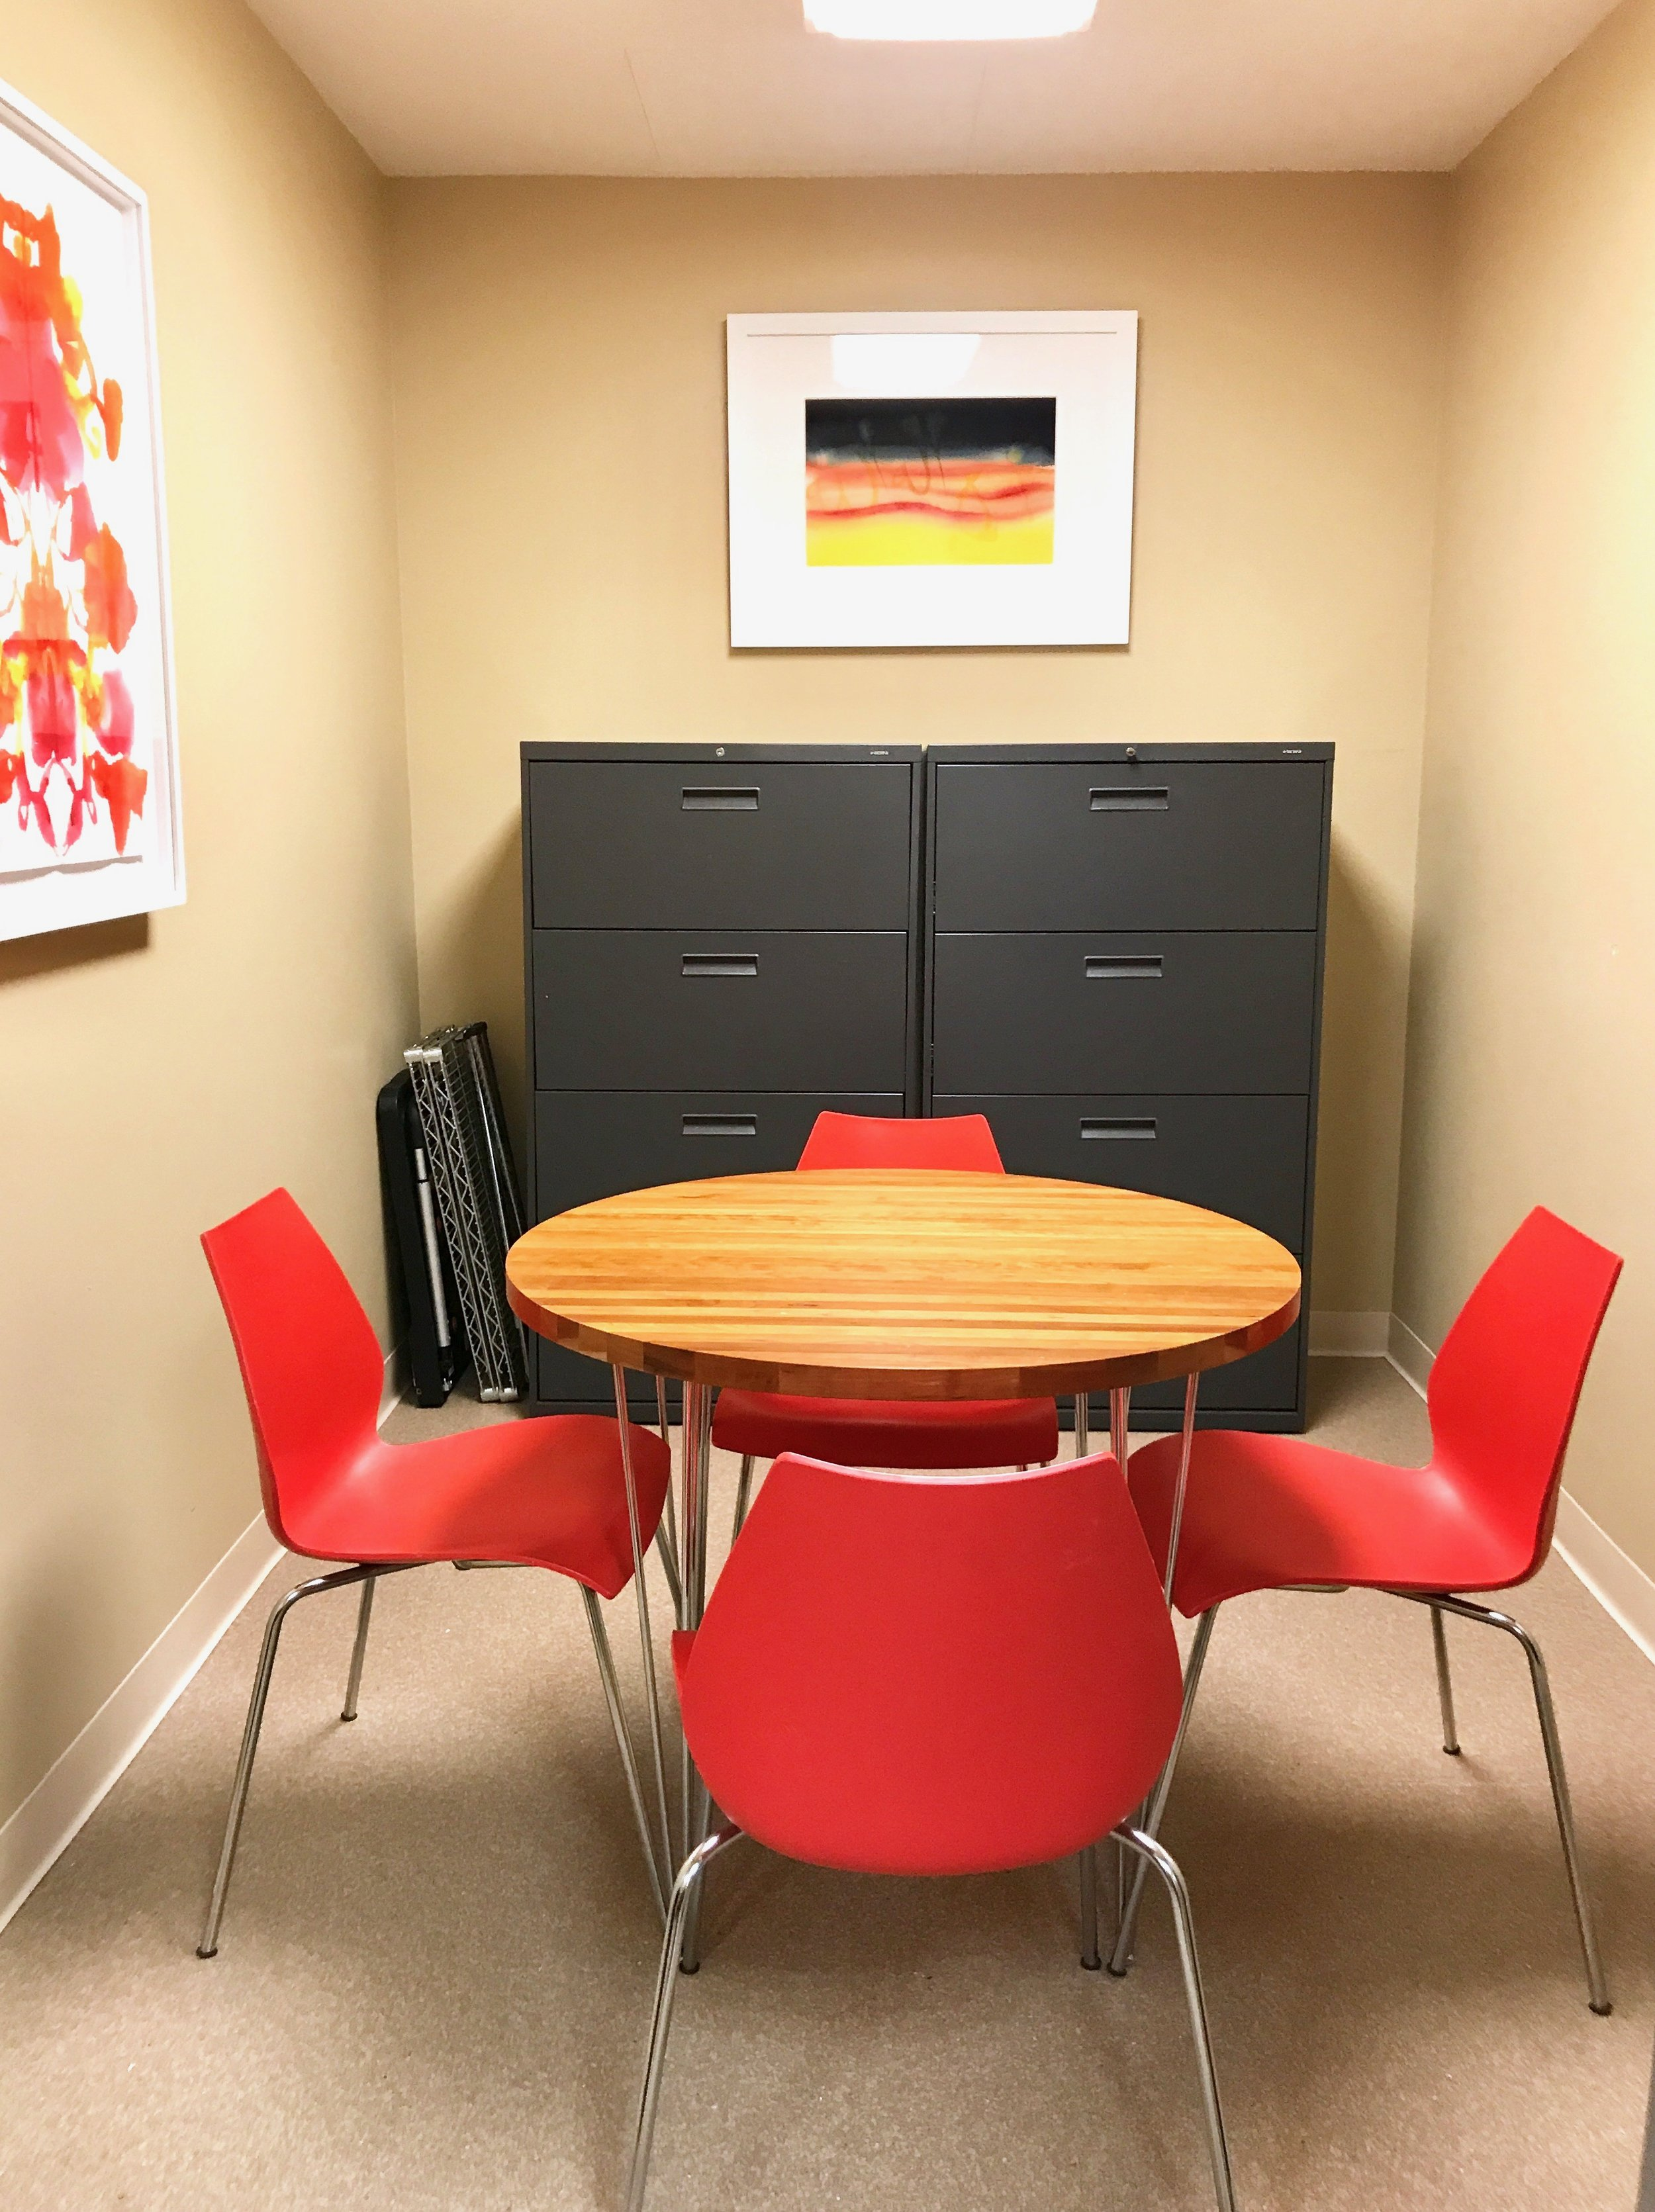 An office break room with coral accent chairs, hanging pictures, and filing cabinets.